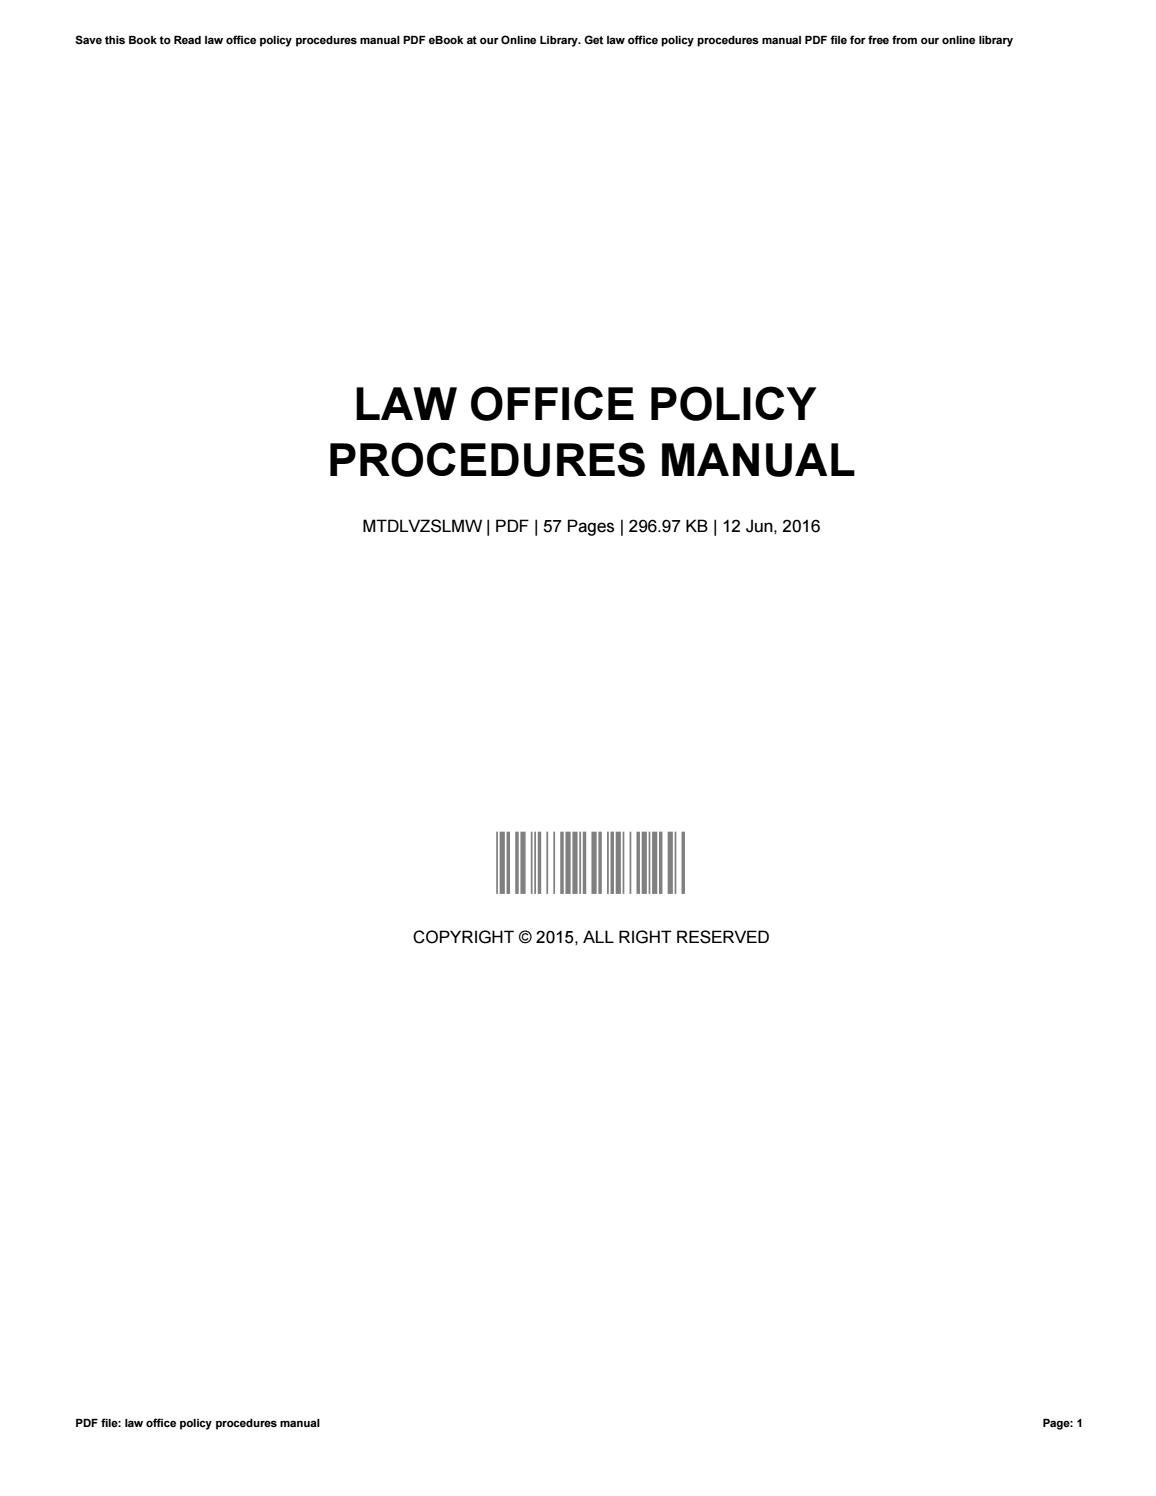 law office policy and procedures manual